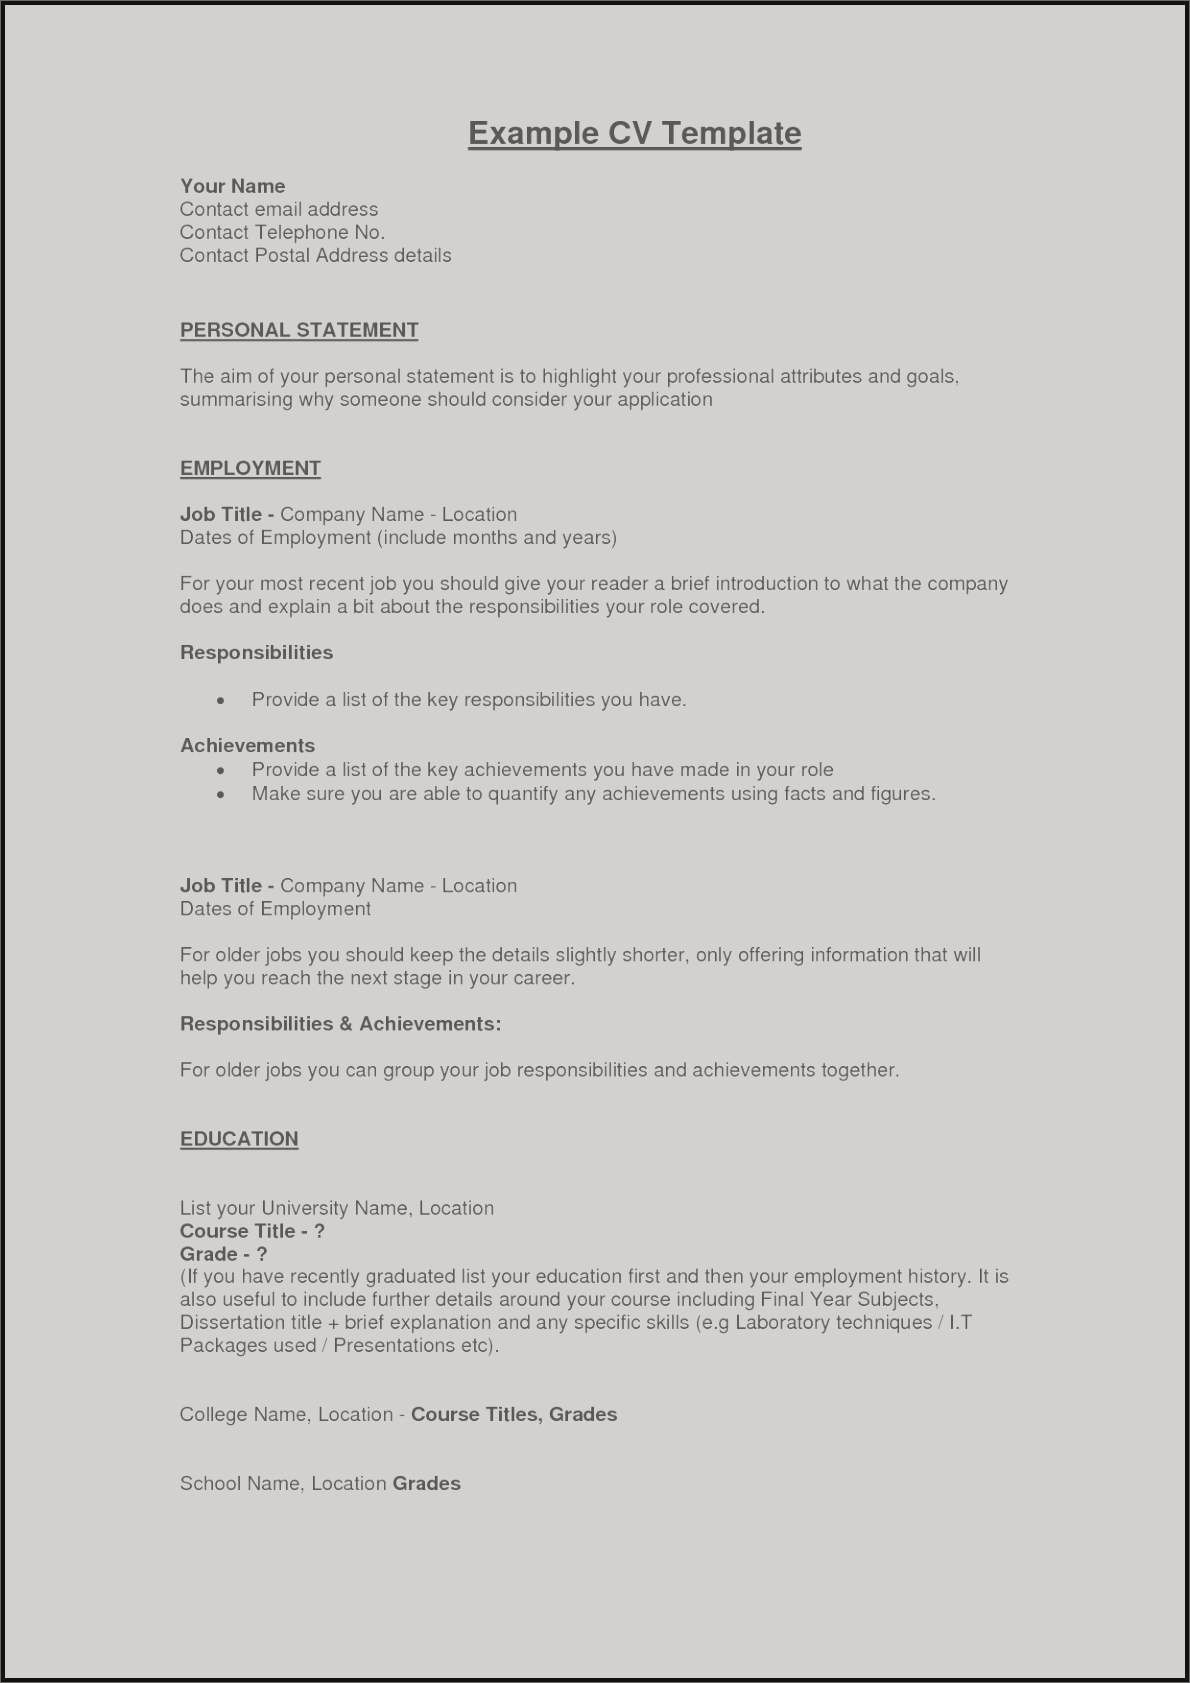 Career Objective for Resume for Fresher - Freshers Resume Samples New Example Perfect Resume Fresh Examples